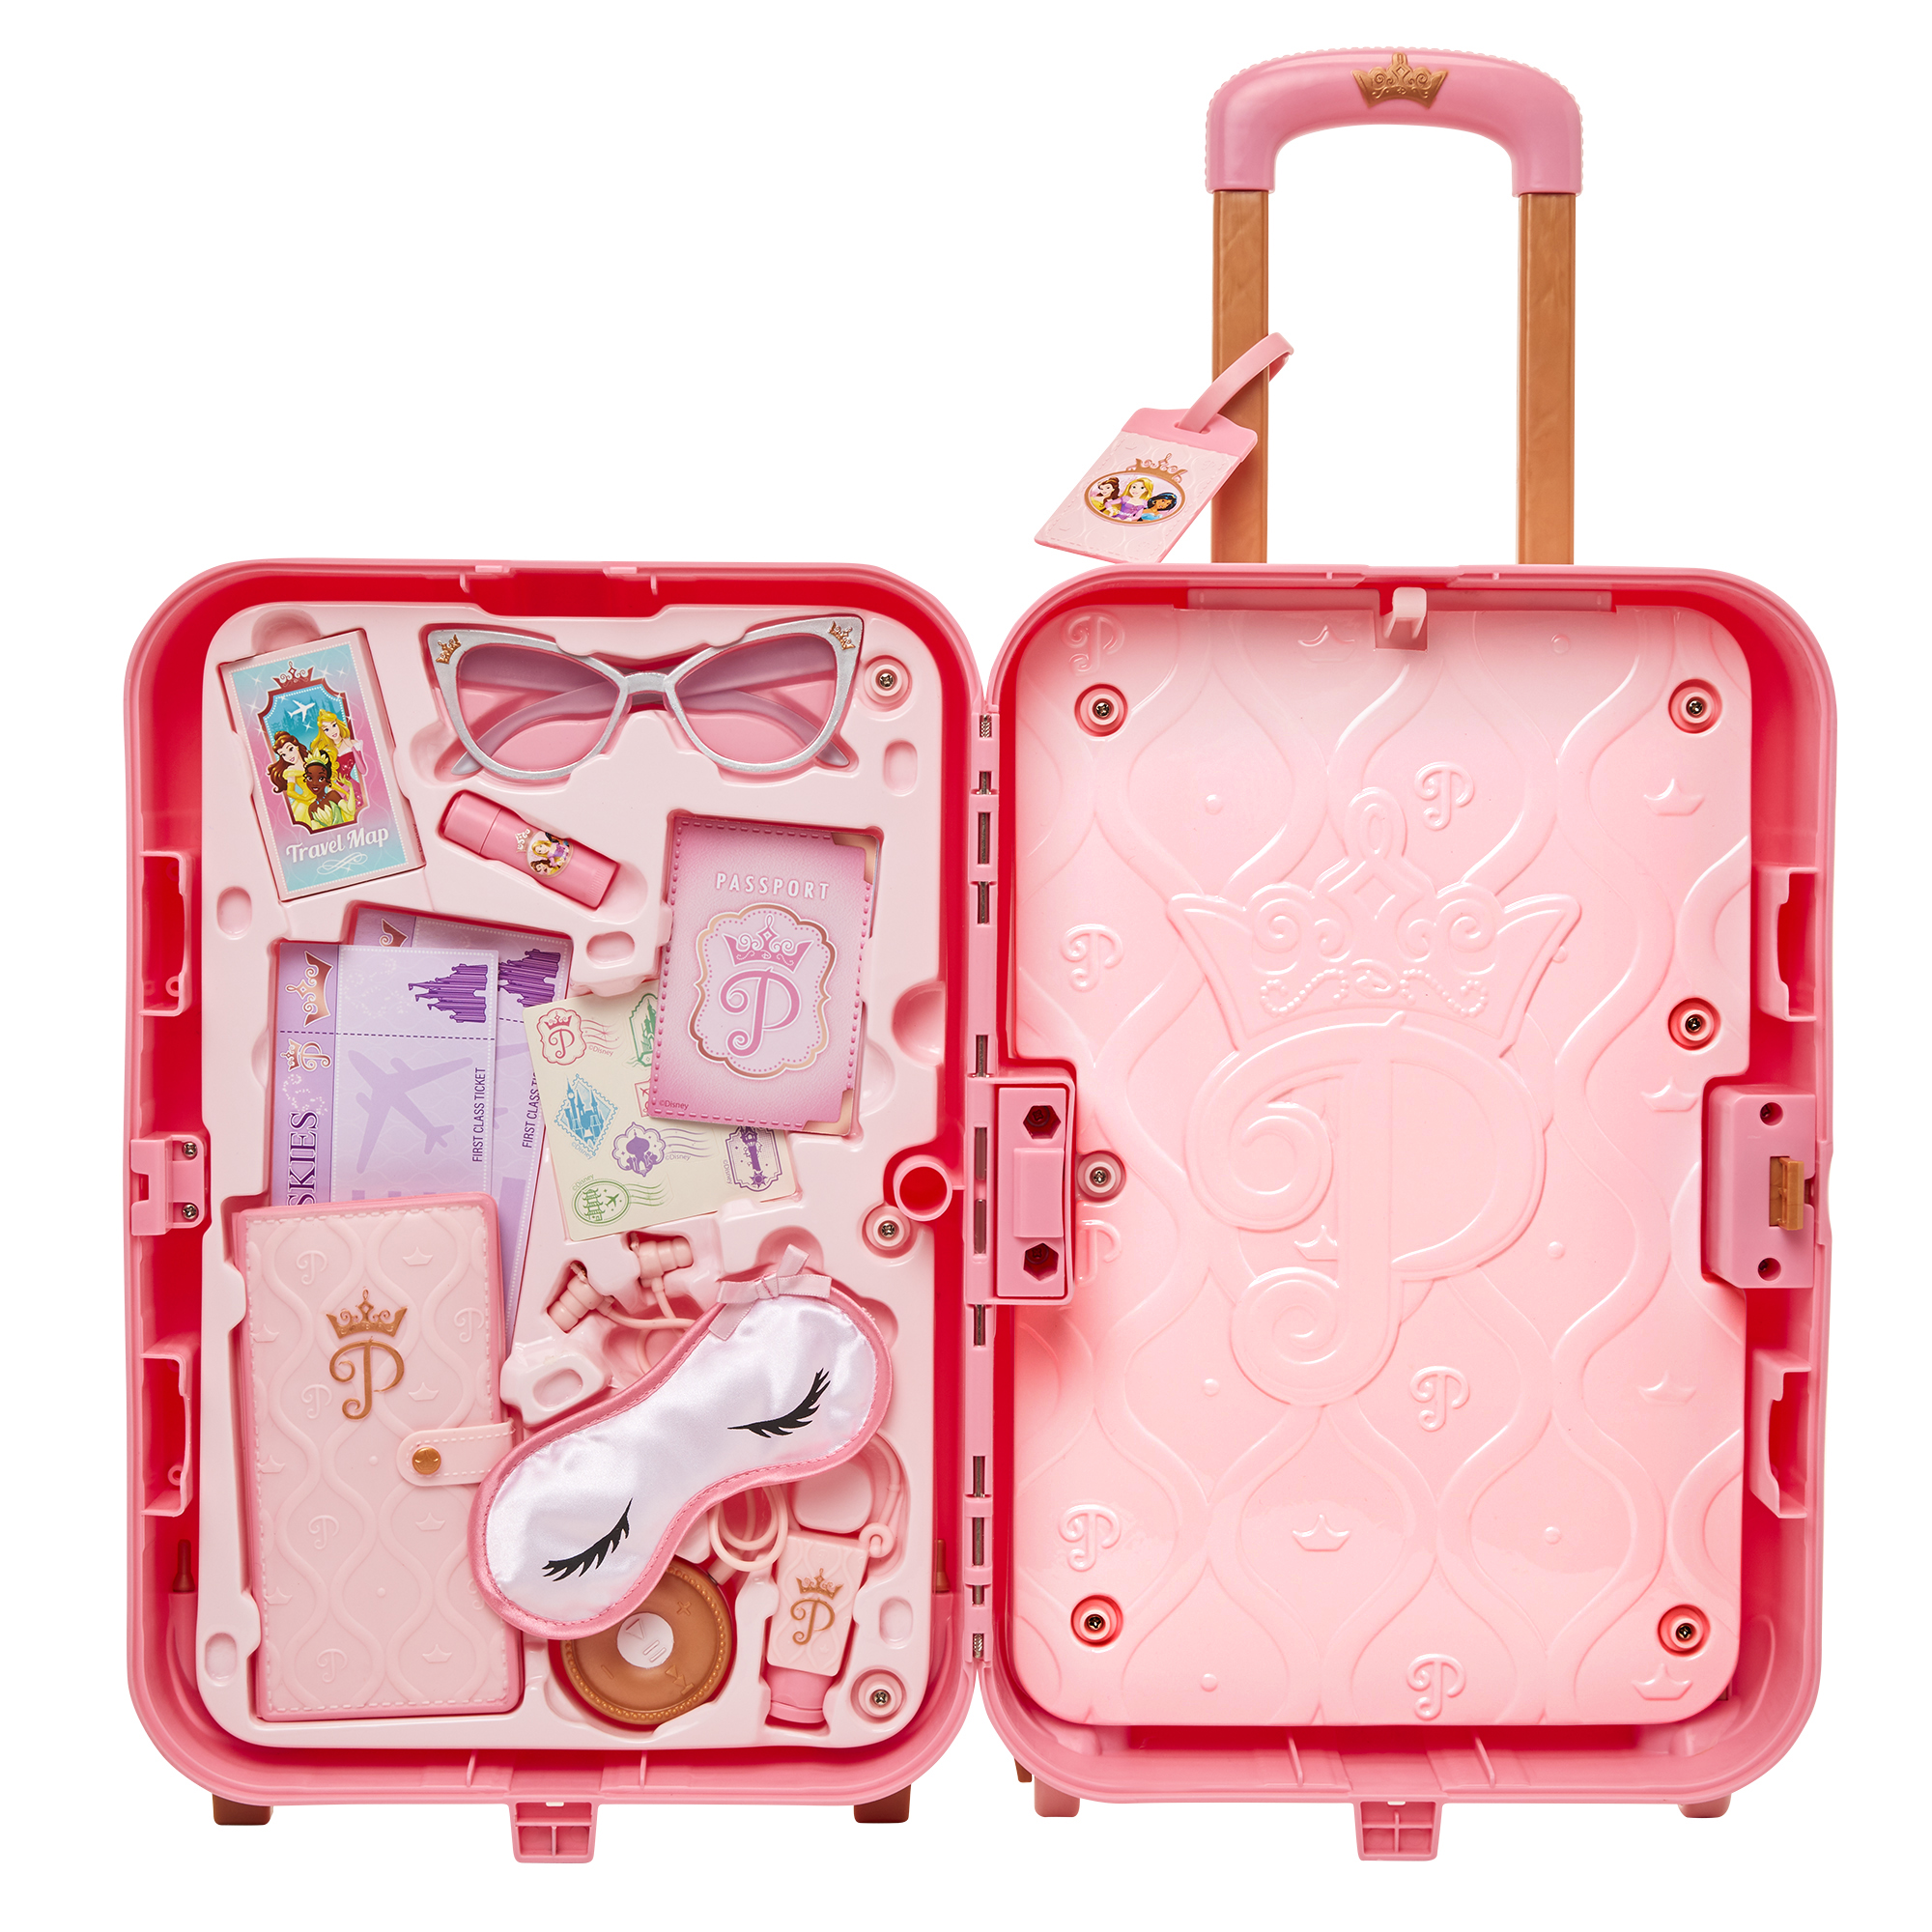 Disney Princess Style Collection Play Suitcase